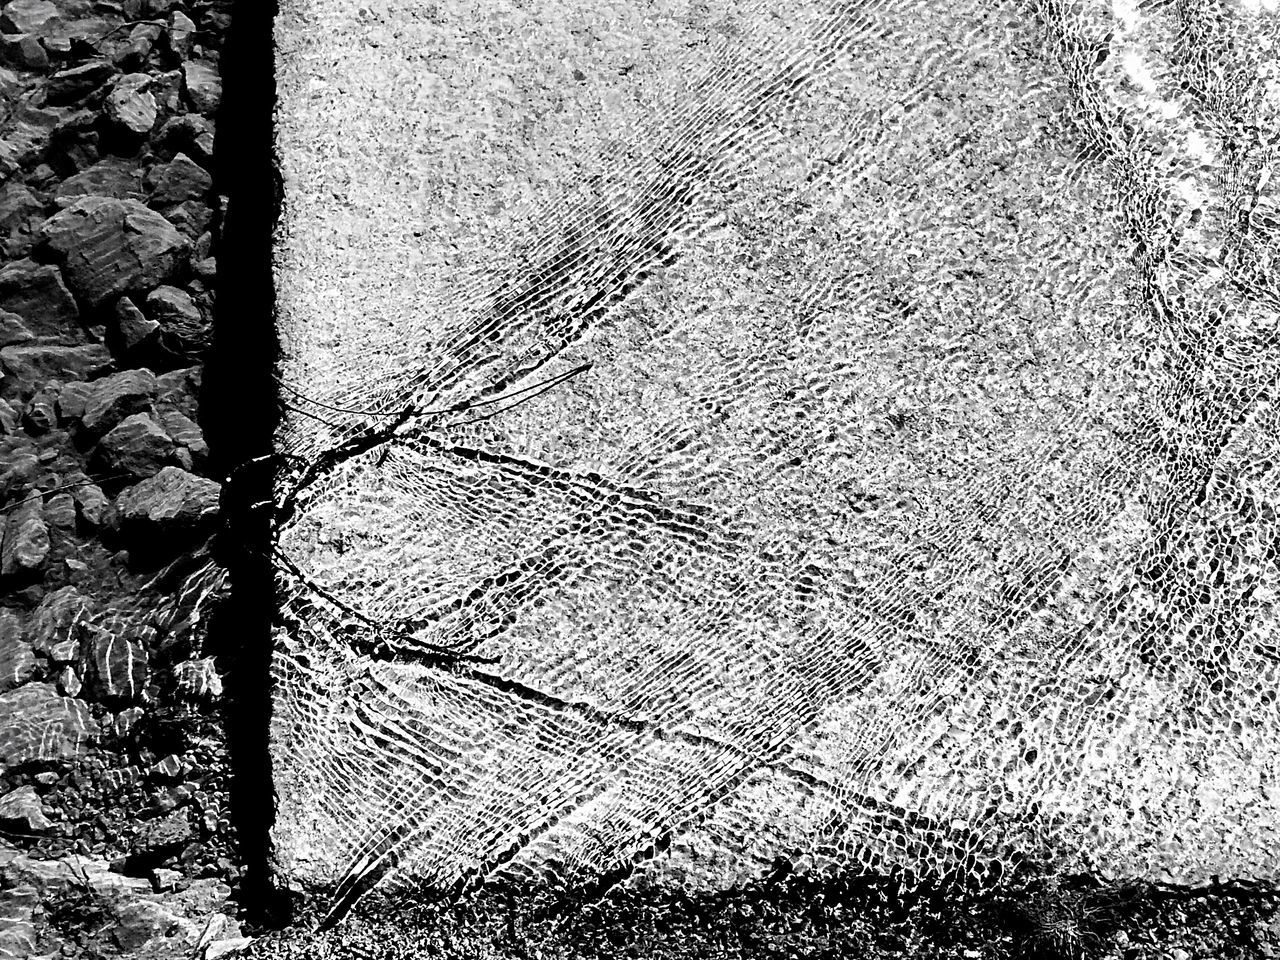 Pattern Pieces Aftermath Of Snowstorm '16 Creek Water Water Over Road Water_collection Abstract there was a stick stuck on the edge of the bridge, water going around it making this cute pattern... Serenity